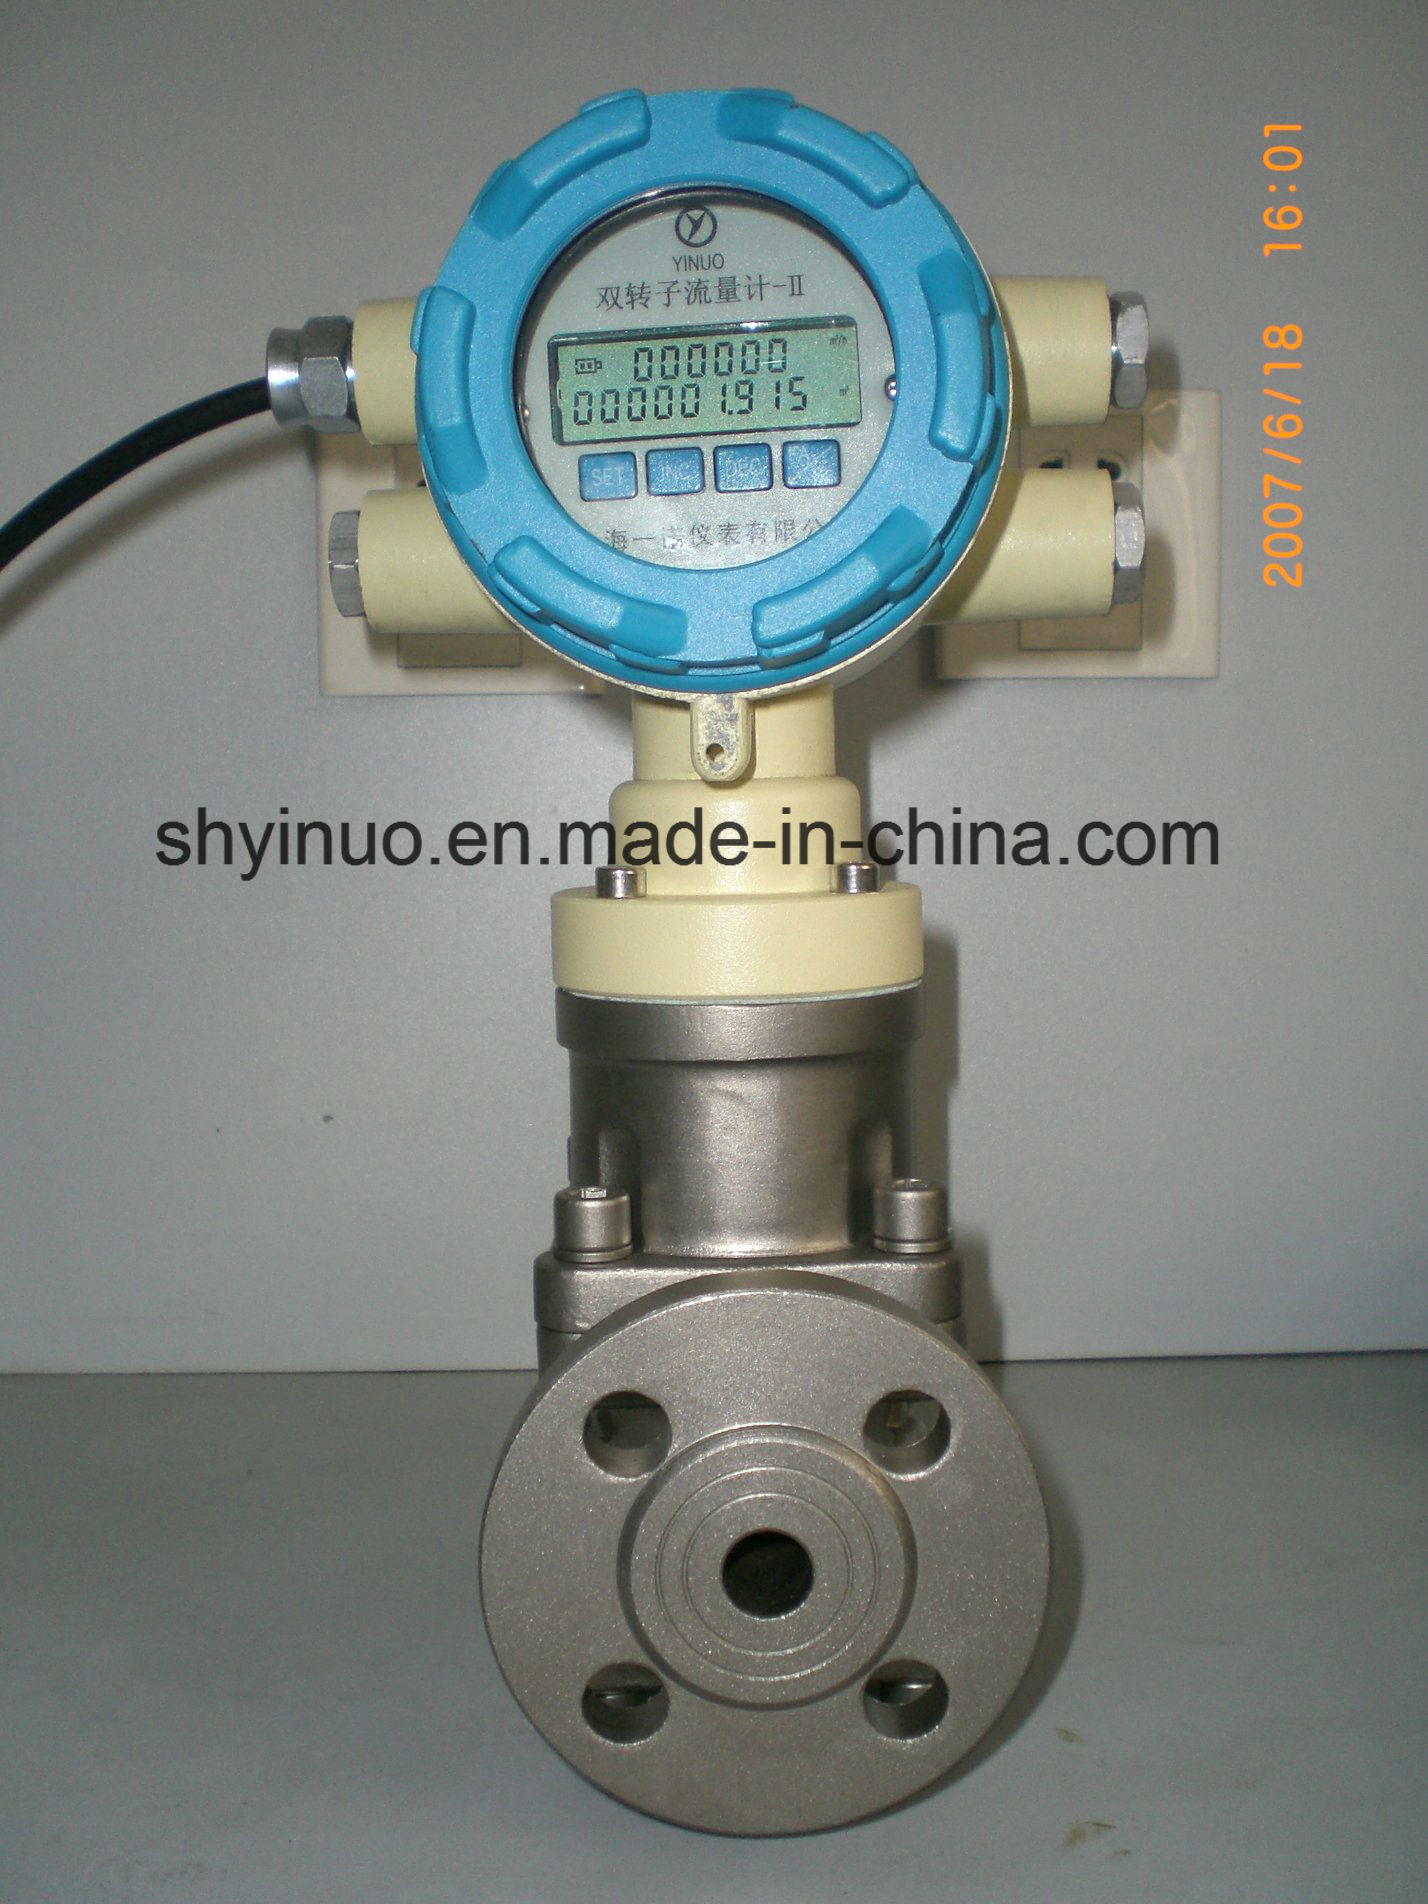 Customized Positive Displacement Flow Meter with Electronic Counter